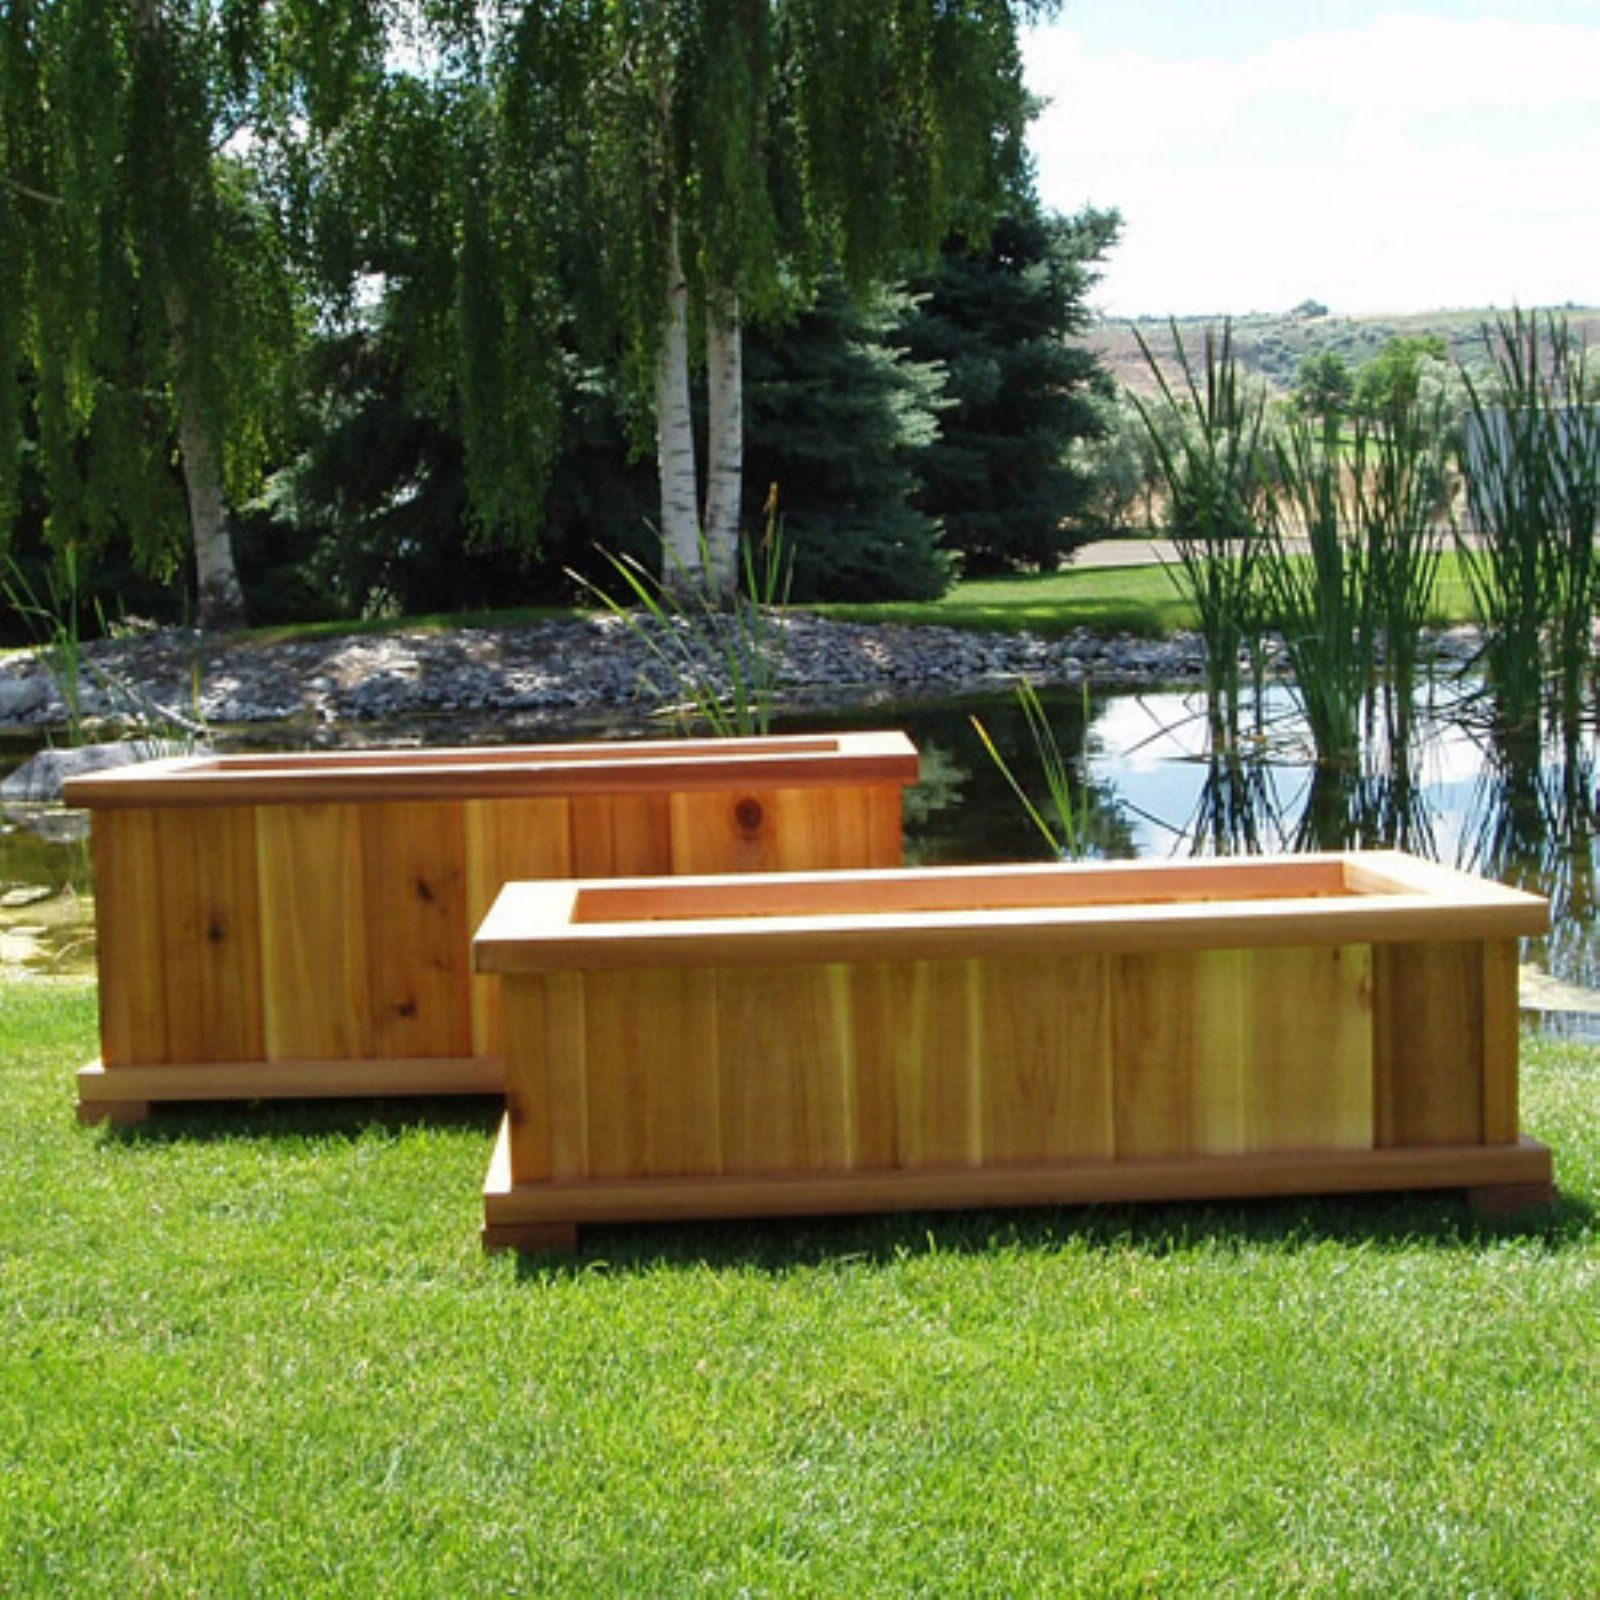 Wooden Garden Planters Ideas wooden planter more Images Of Planter Box Genie Backyard And Patio Wallpaper Wooden Planter Boxeslarge